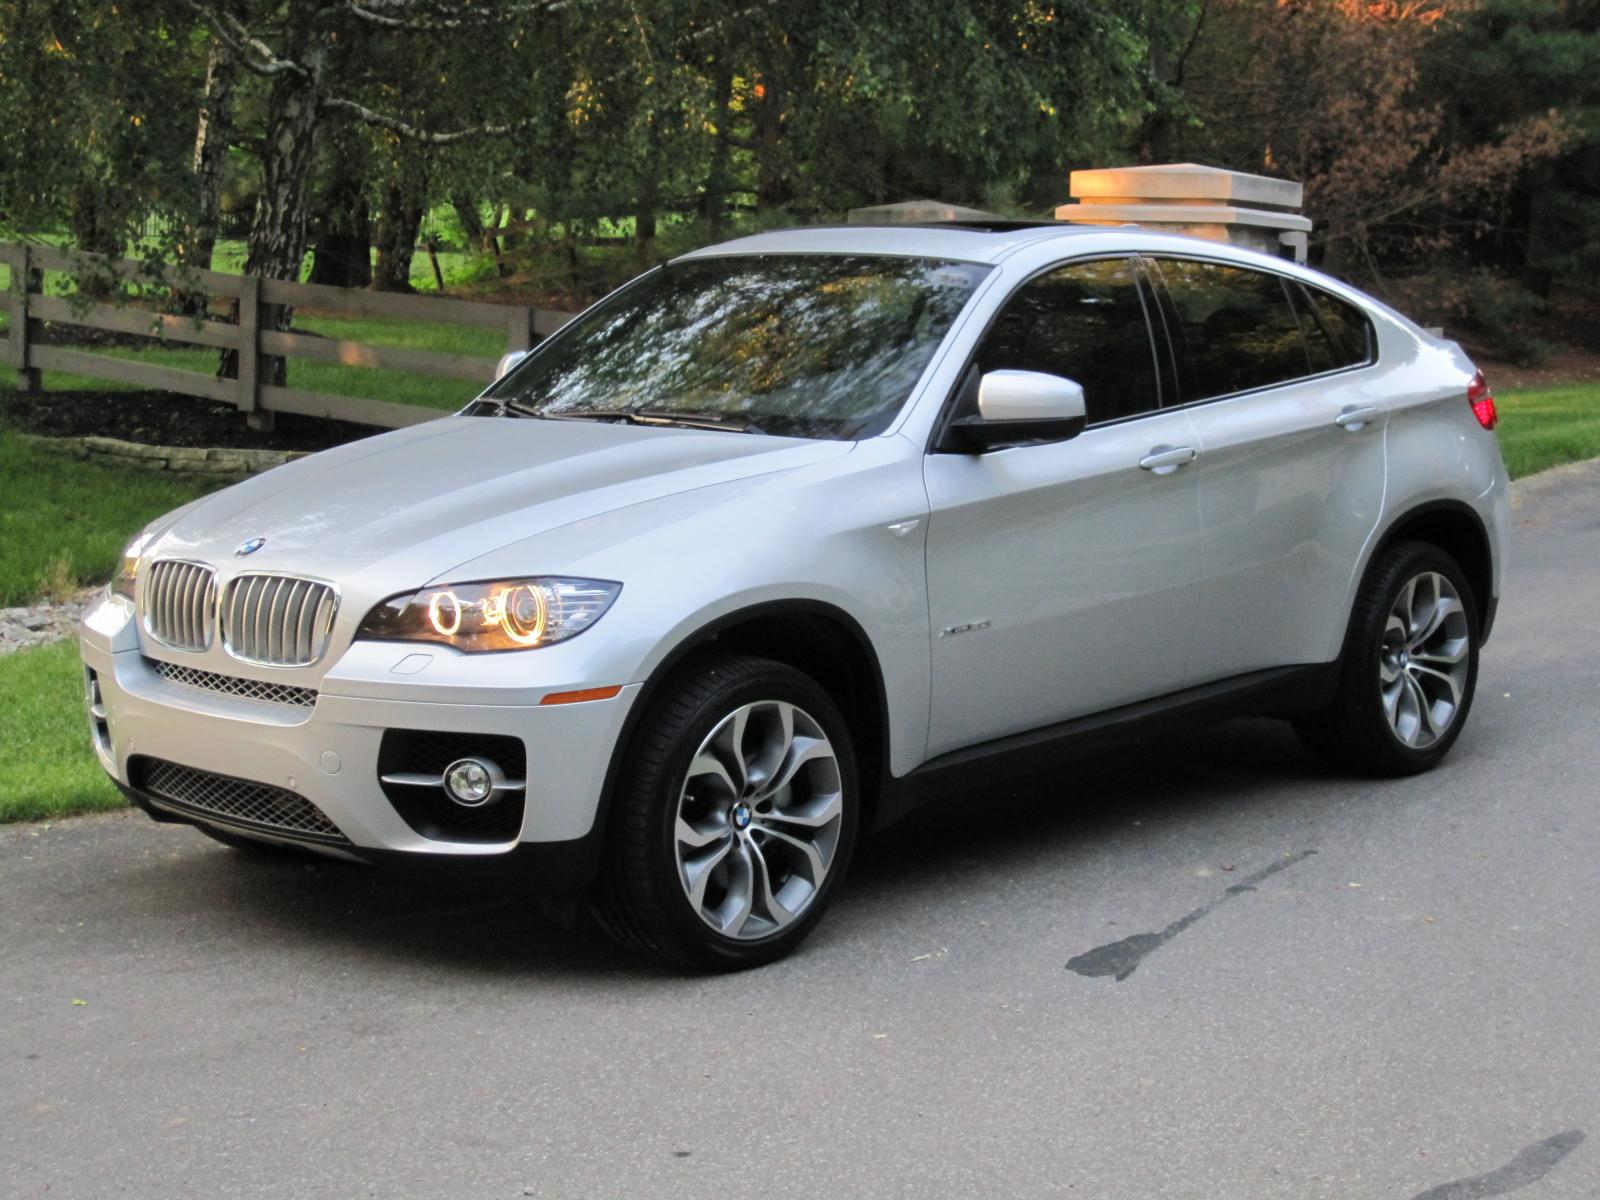 BMW X6 xDrive50i 2011 photo - 4